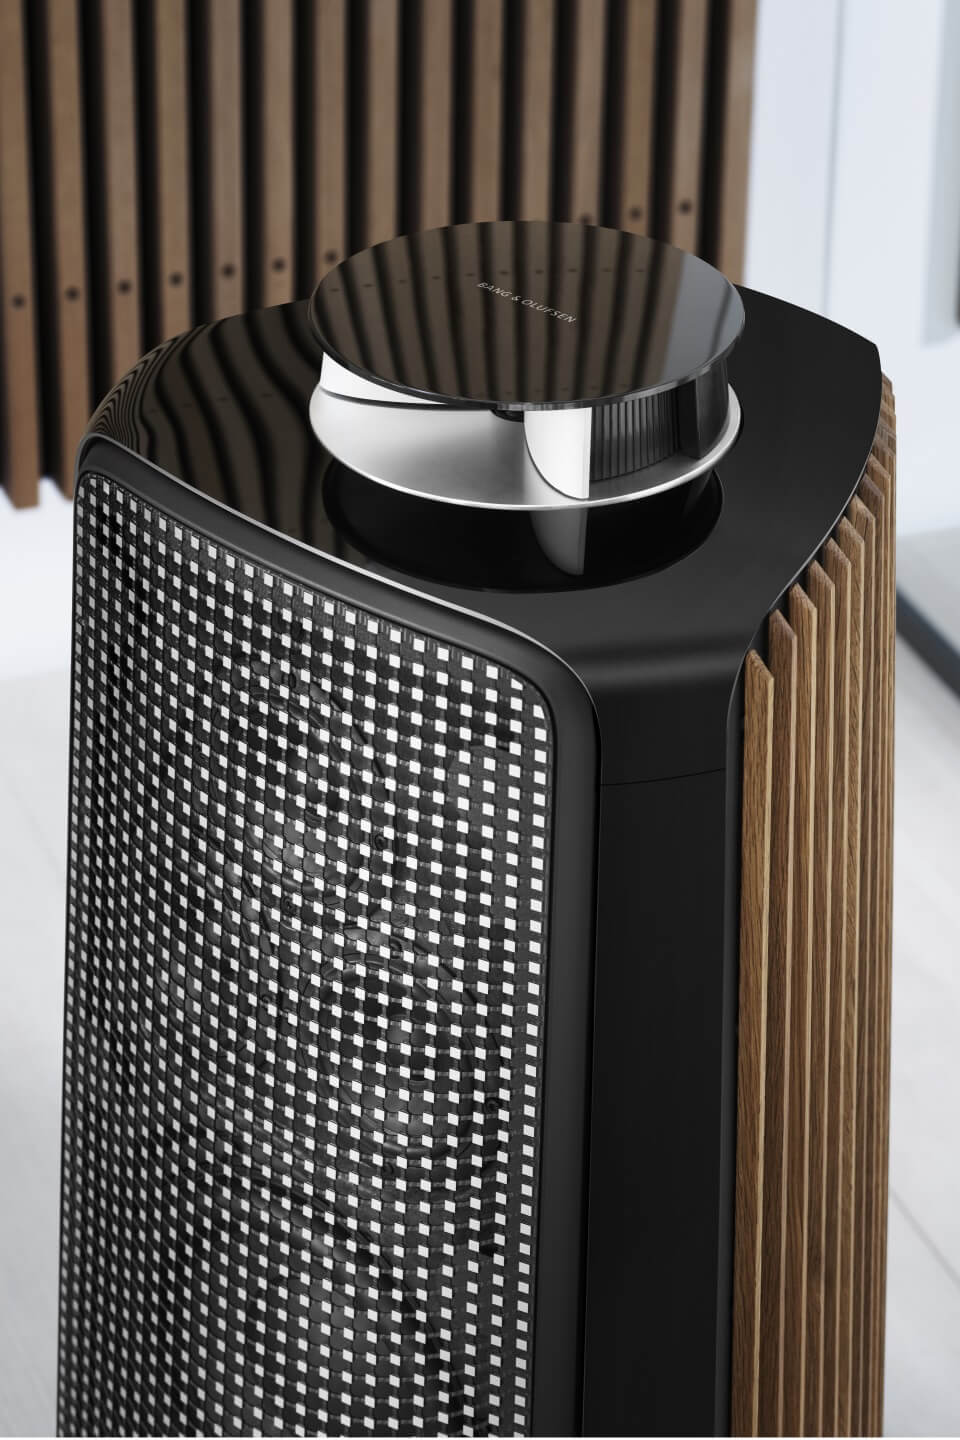 BeoLab 50 brass tone with smoked oak panels